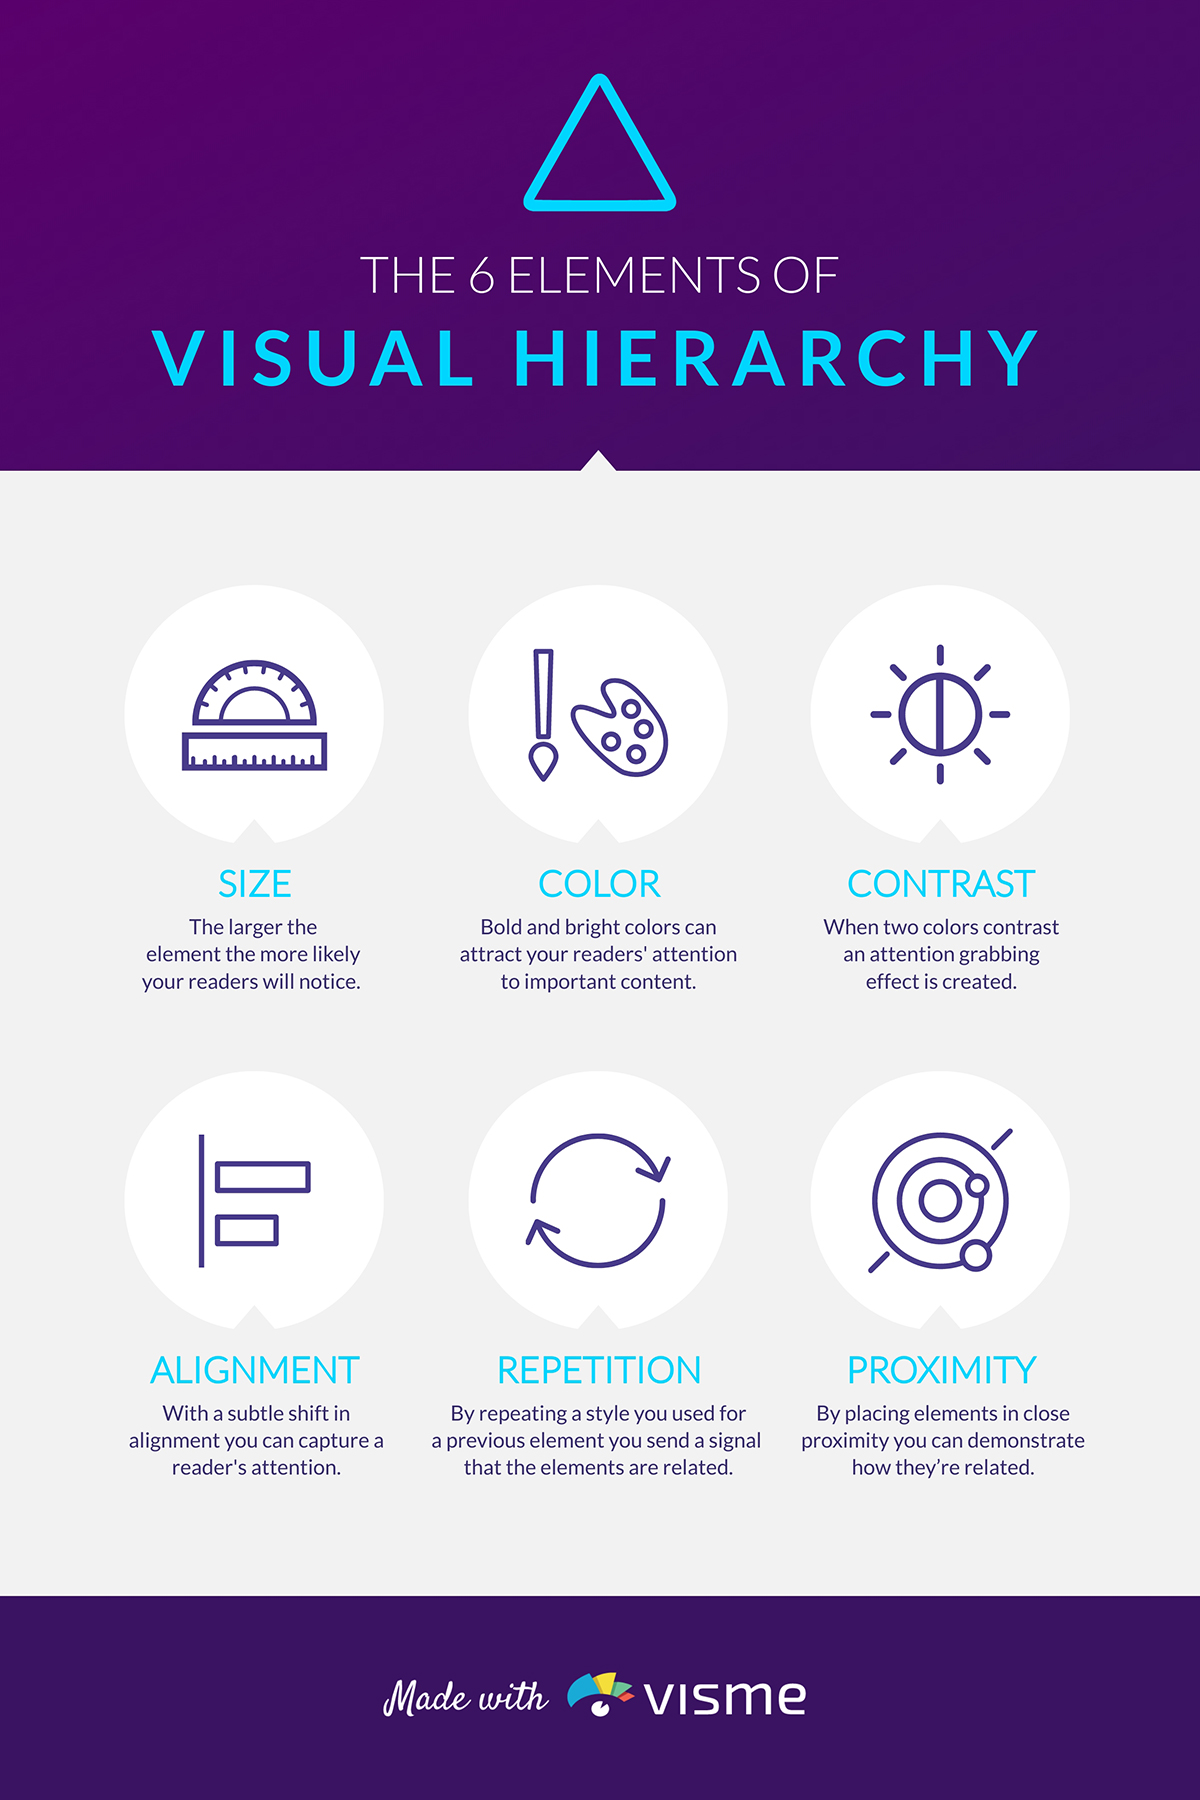 An infographic listing the elements of visual hierarchy.